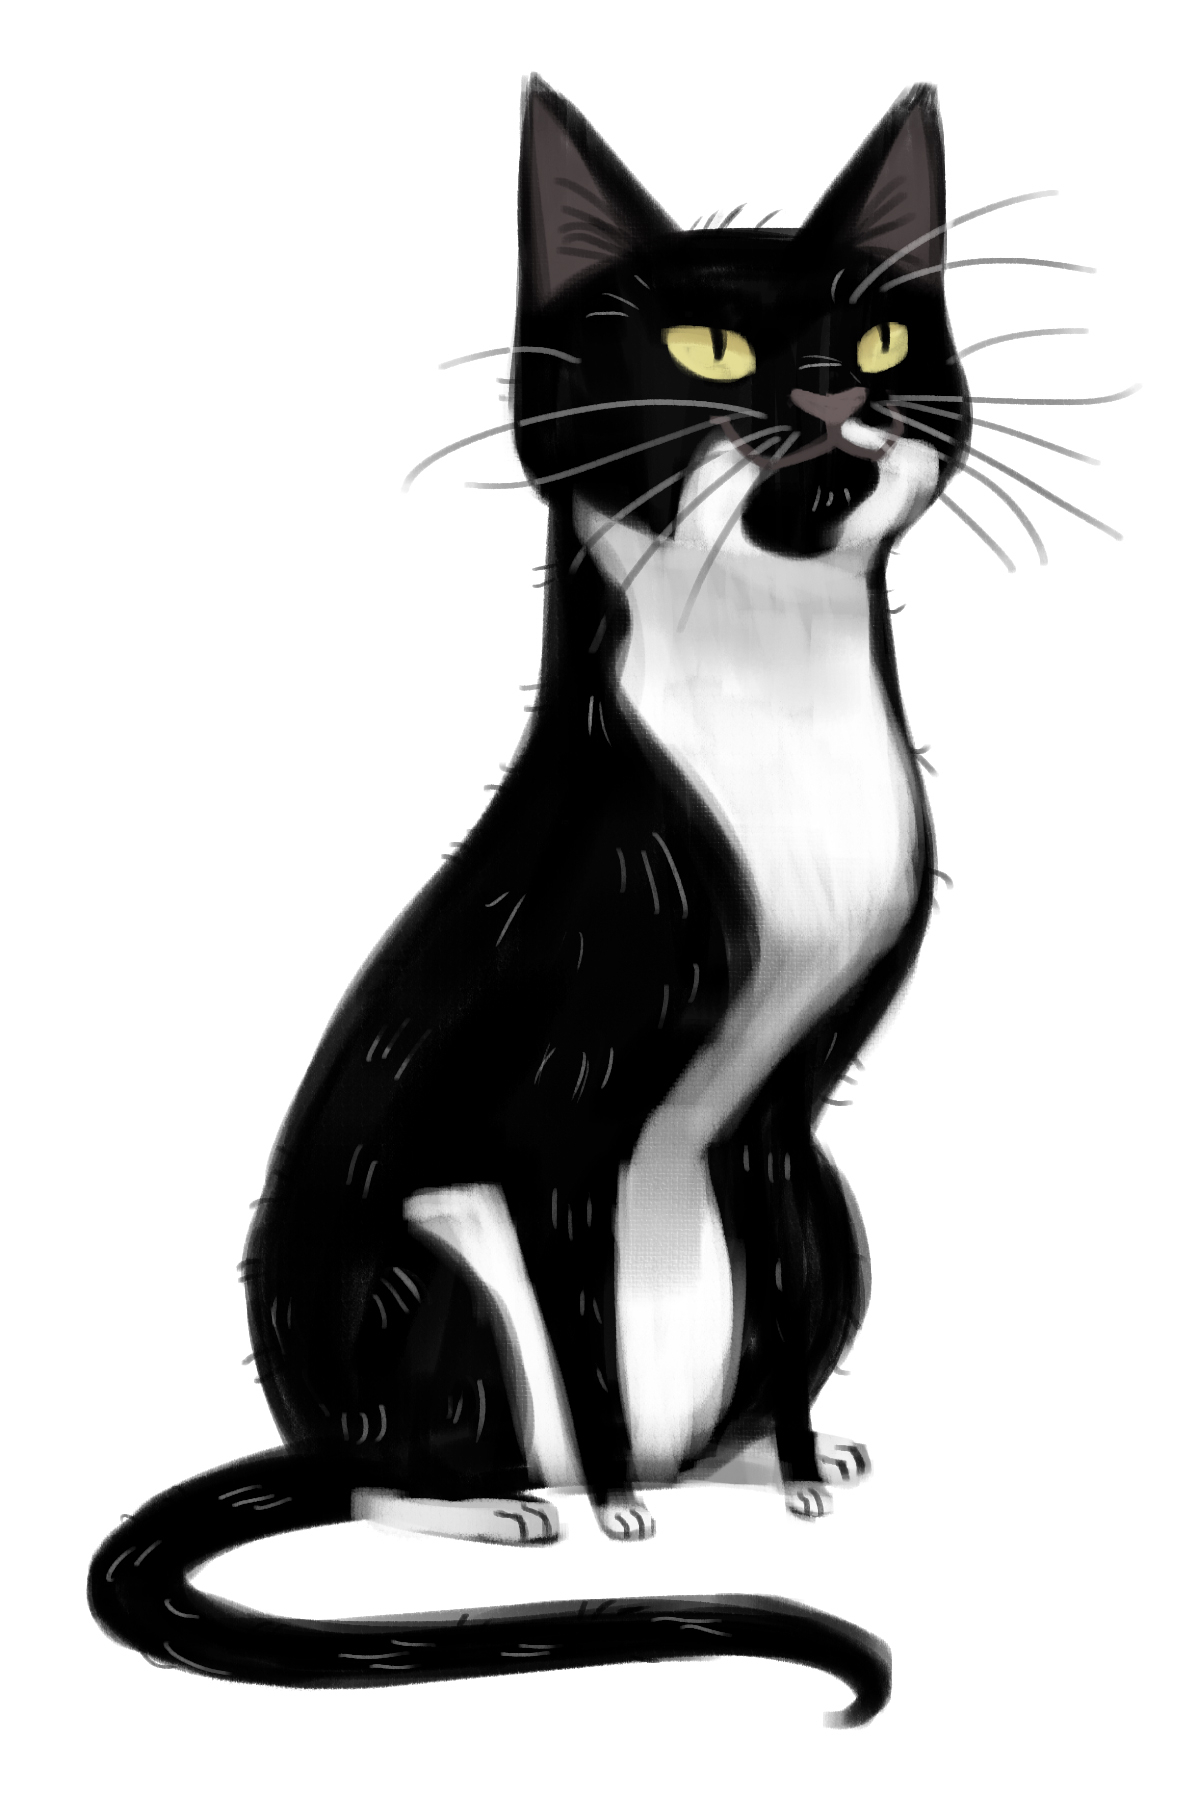 1200x1800 Cat Drawing Black And White Daily Cat Drawings 045 Papi My